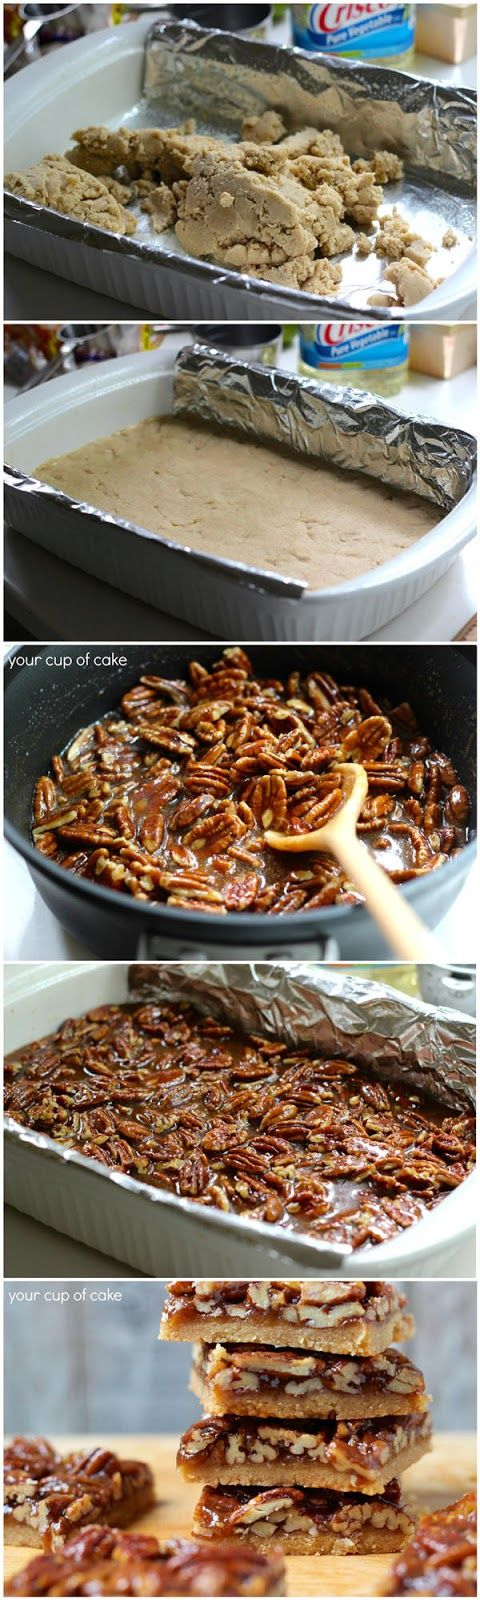 Pecan Pie Bars. Crust: 1 C. butter 2/3 C. brown sugar 2 2/3 C. flour 1/2 tsp. salt 1/4 tsp. cinnamon Pecan Topping: 1/2 C, butter 1 C. brown sugar 1/3 C. honey 2 Tbsp. heavy cream 2 1/2 C. pecans, roughly chopped 2 tsp. vanilla extract